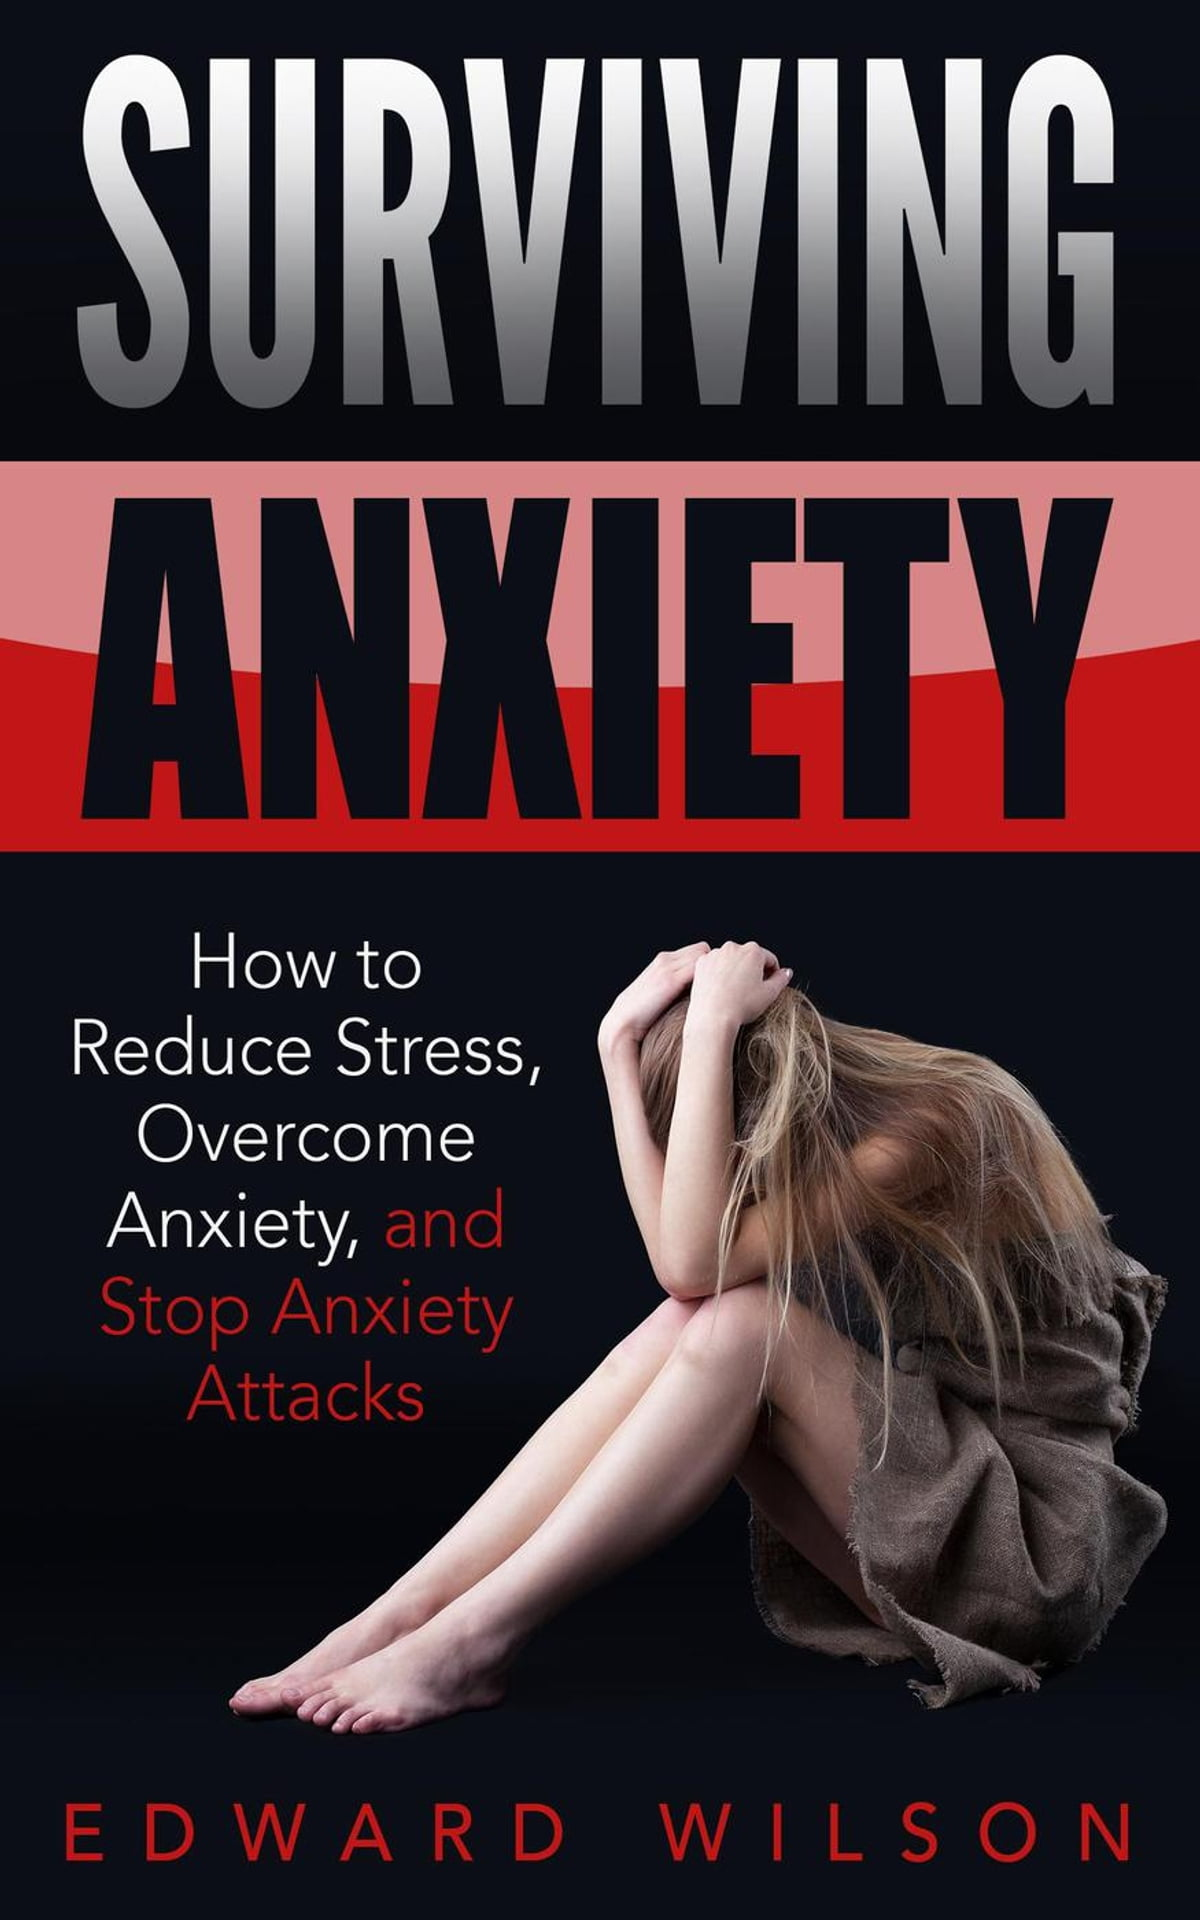 How to stop anxiety attacks